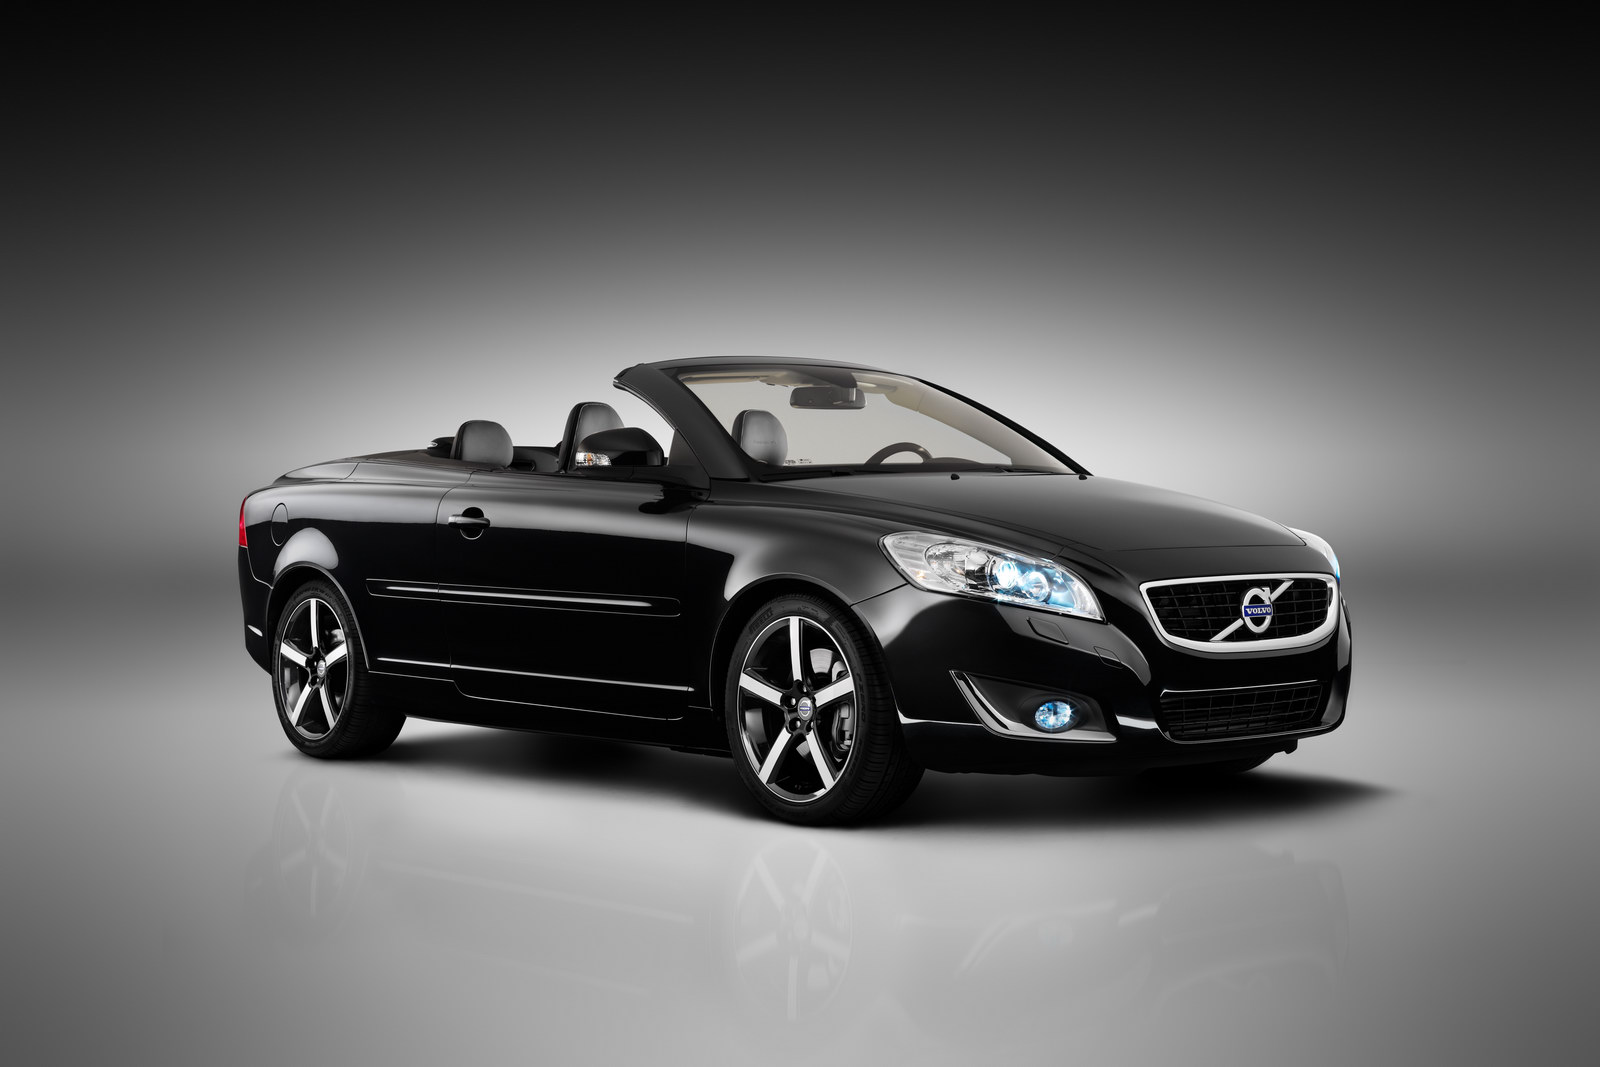 Volvo C70 Inspiration Edition Unveiled